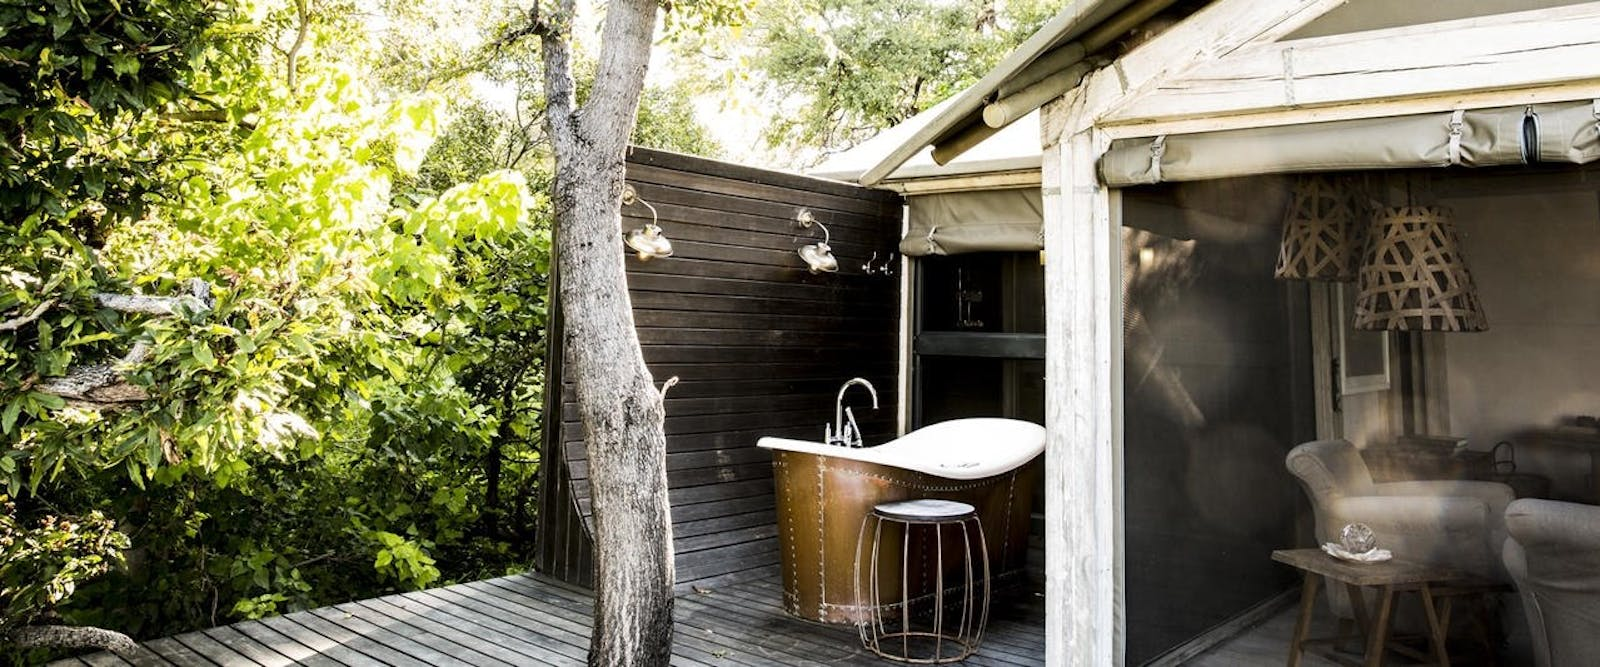 Romantic Outdoor Bath and Shower at Abu, Abu Camp